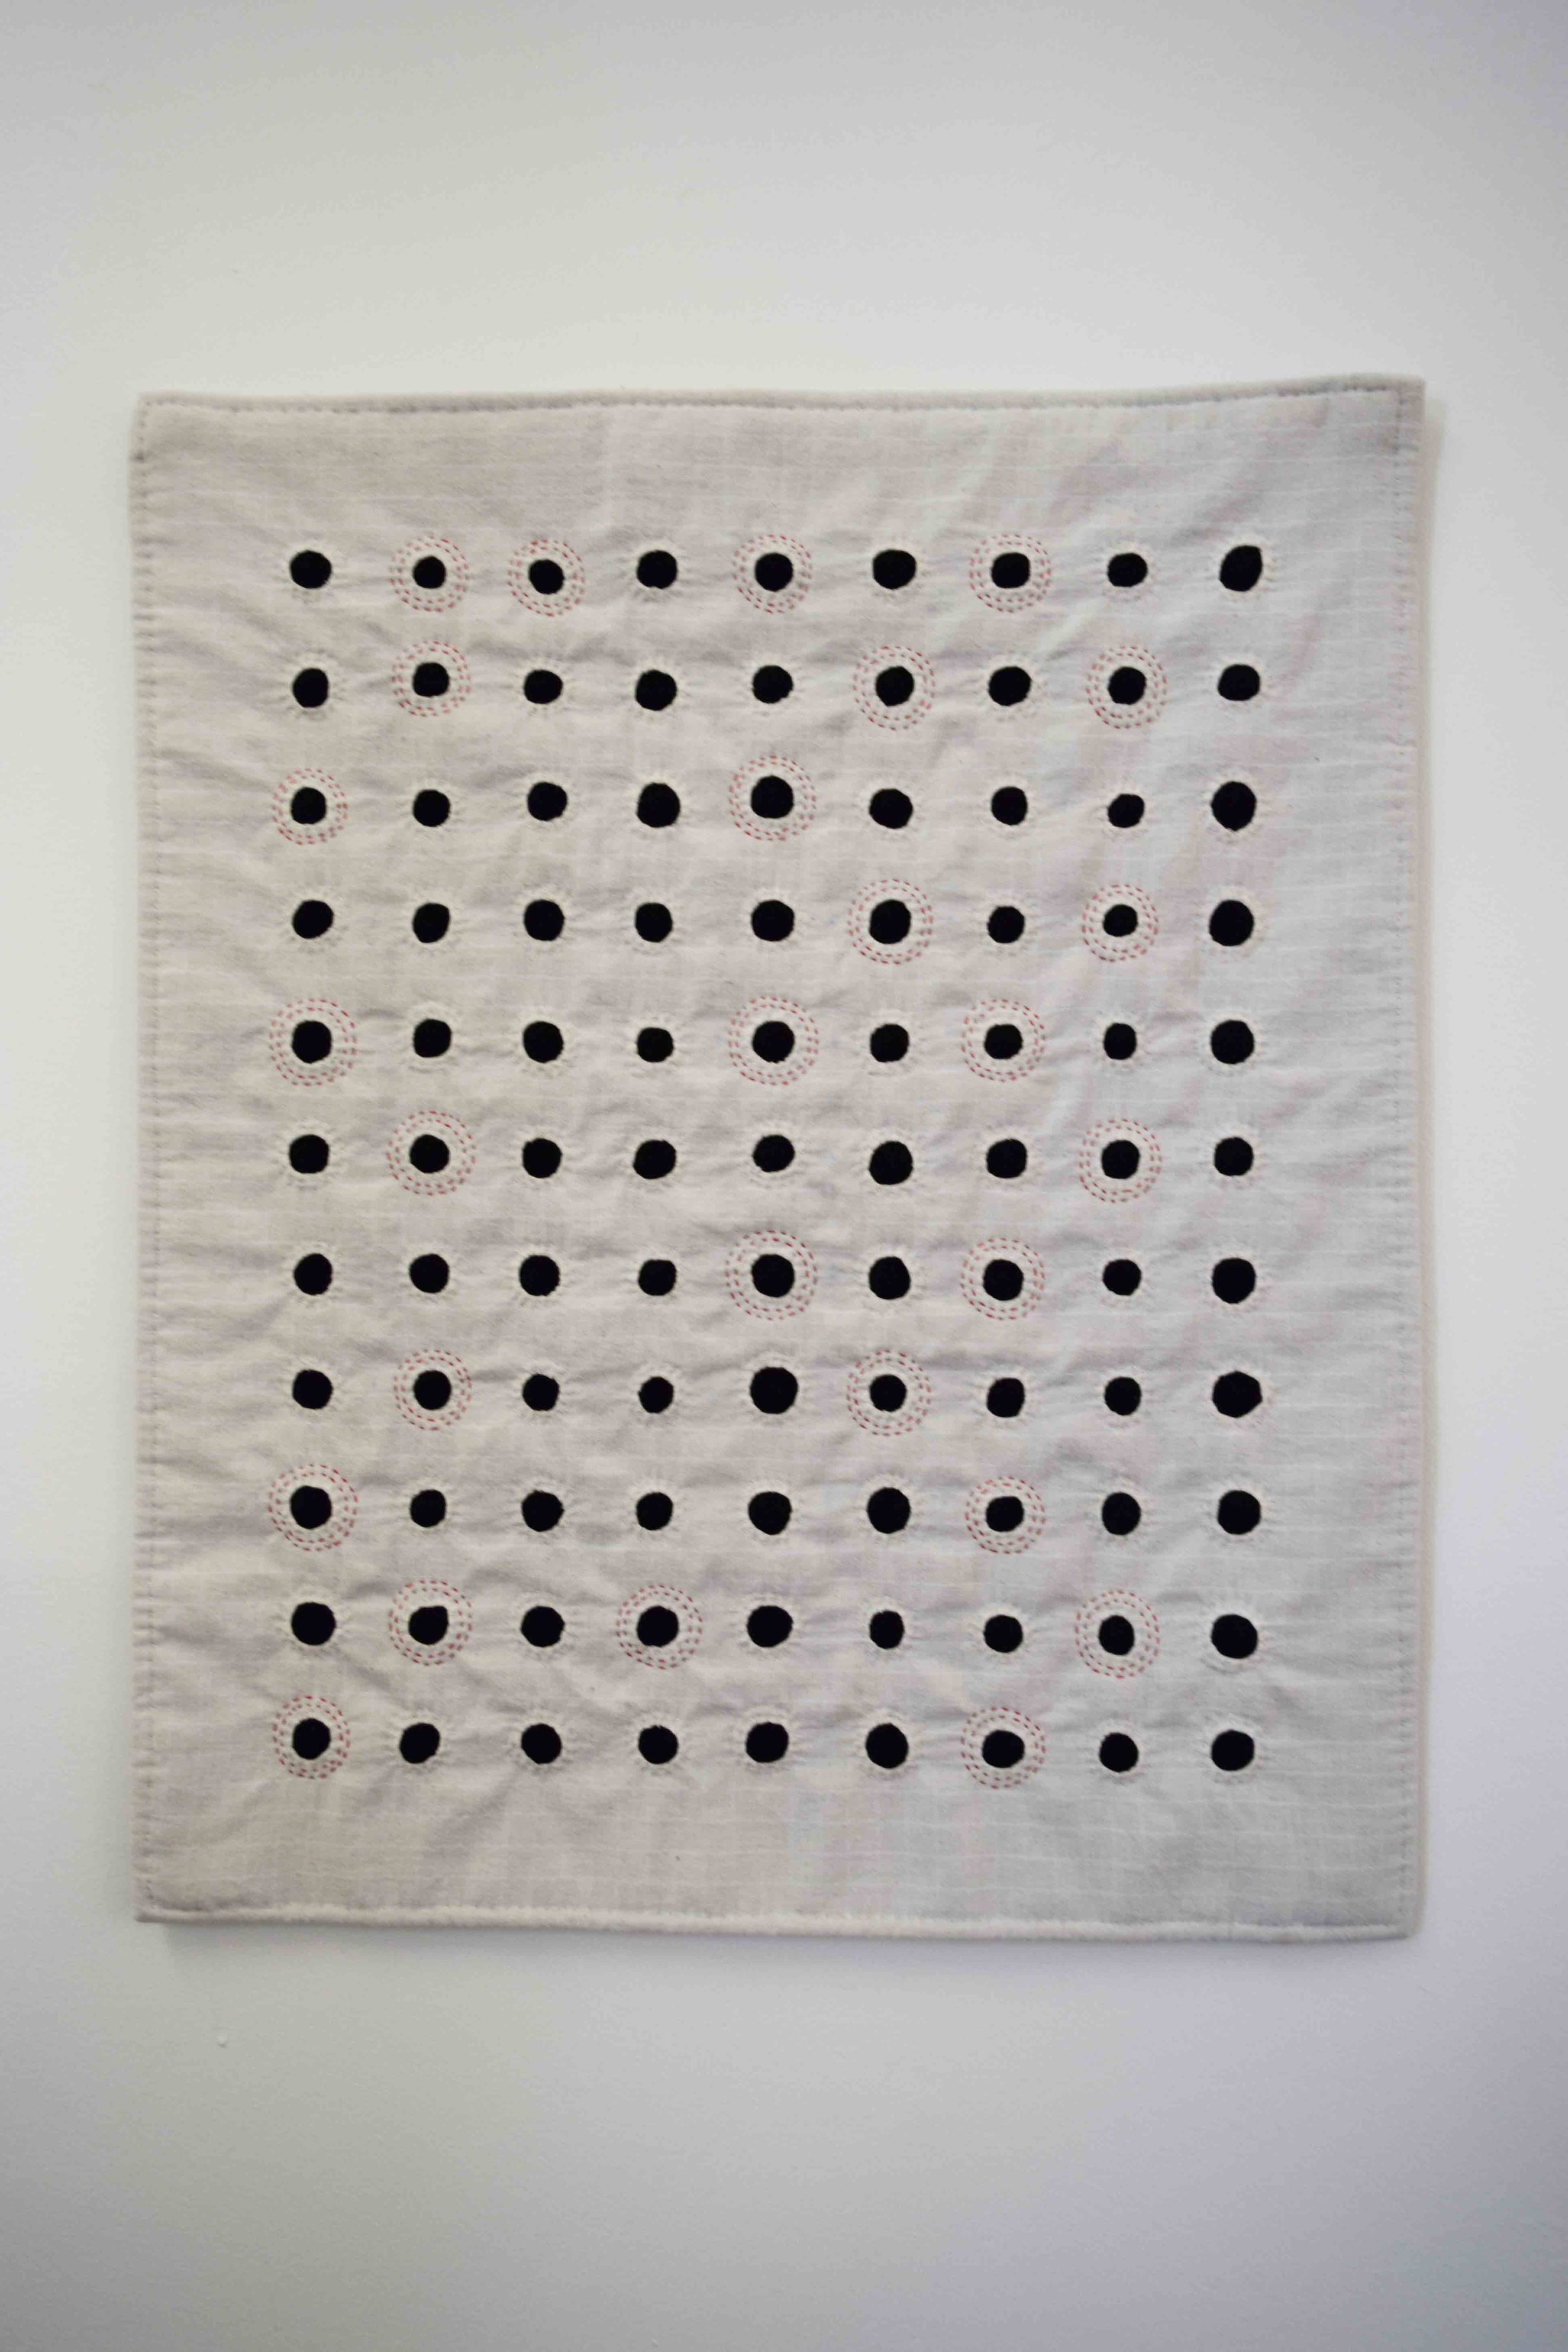 27. Anne Williams,  Primed,  2019, hand stitched cotton and wool, reverse applique, 66 x 54 cm $400